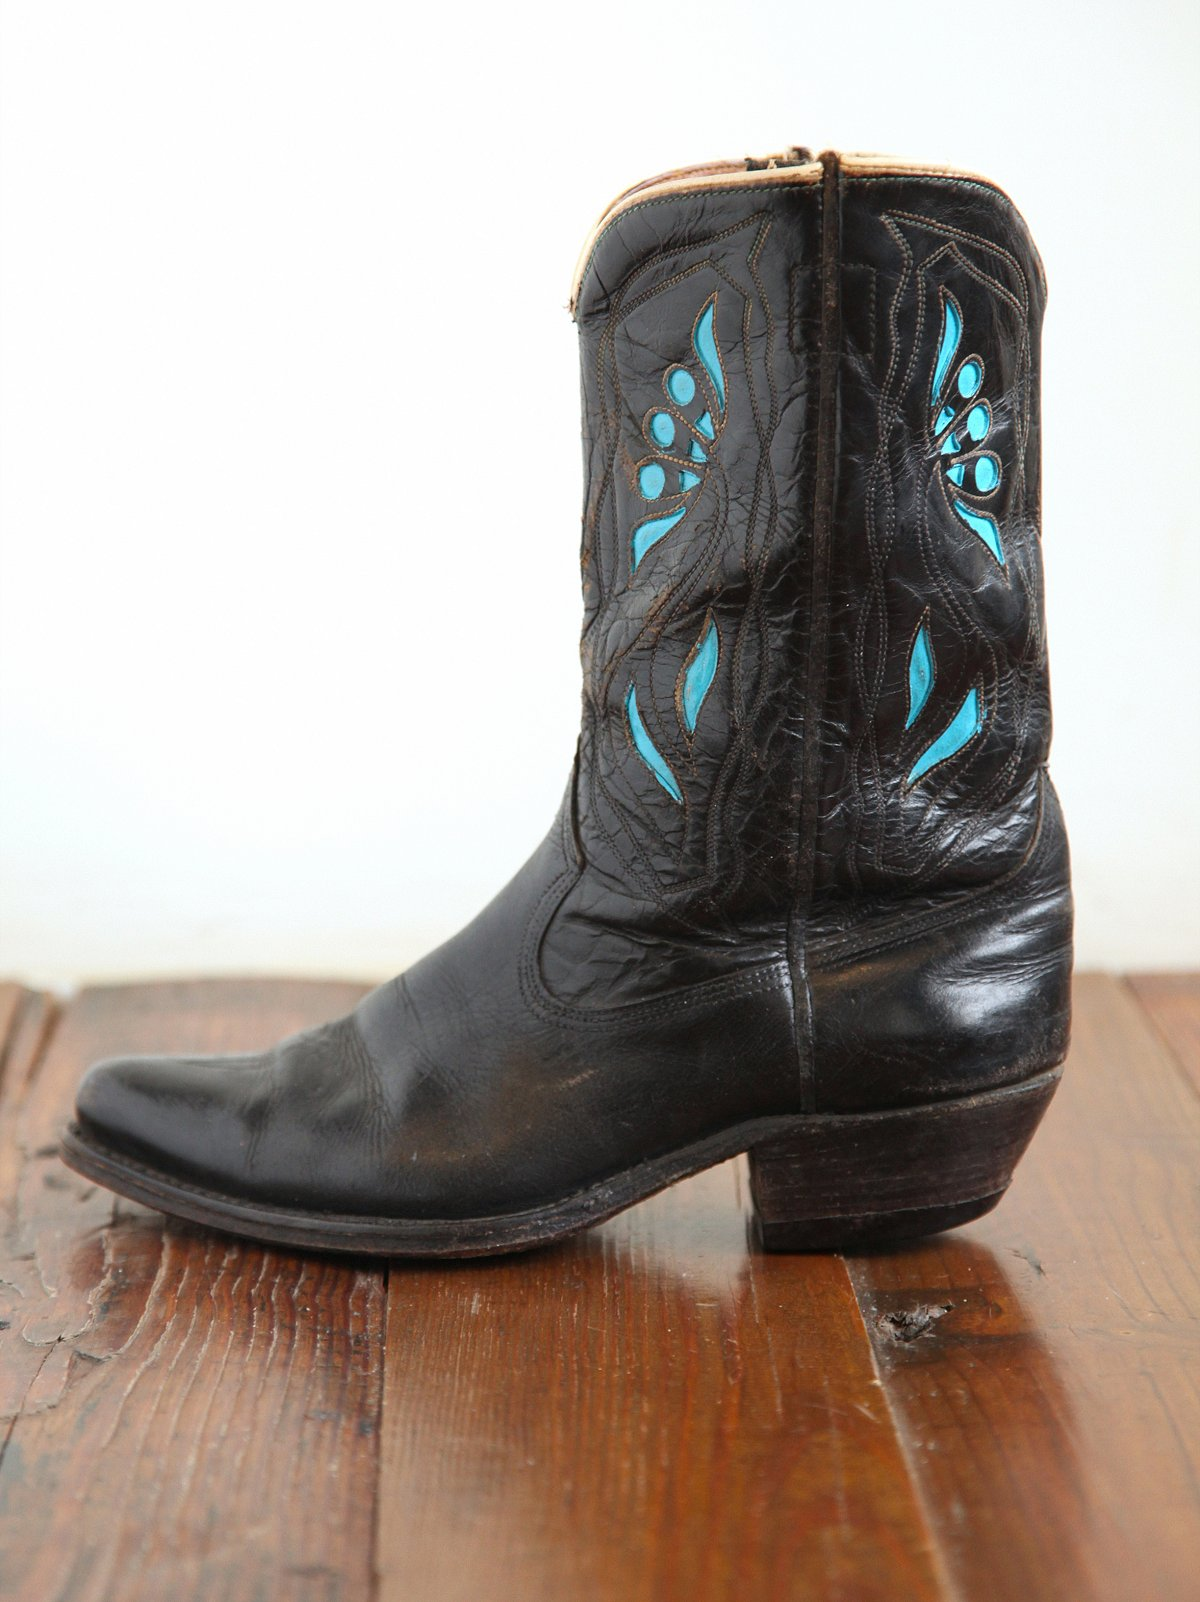 Vintage Black and Turquoise Cowboy Boots